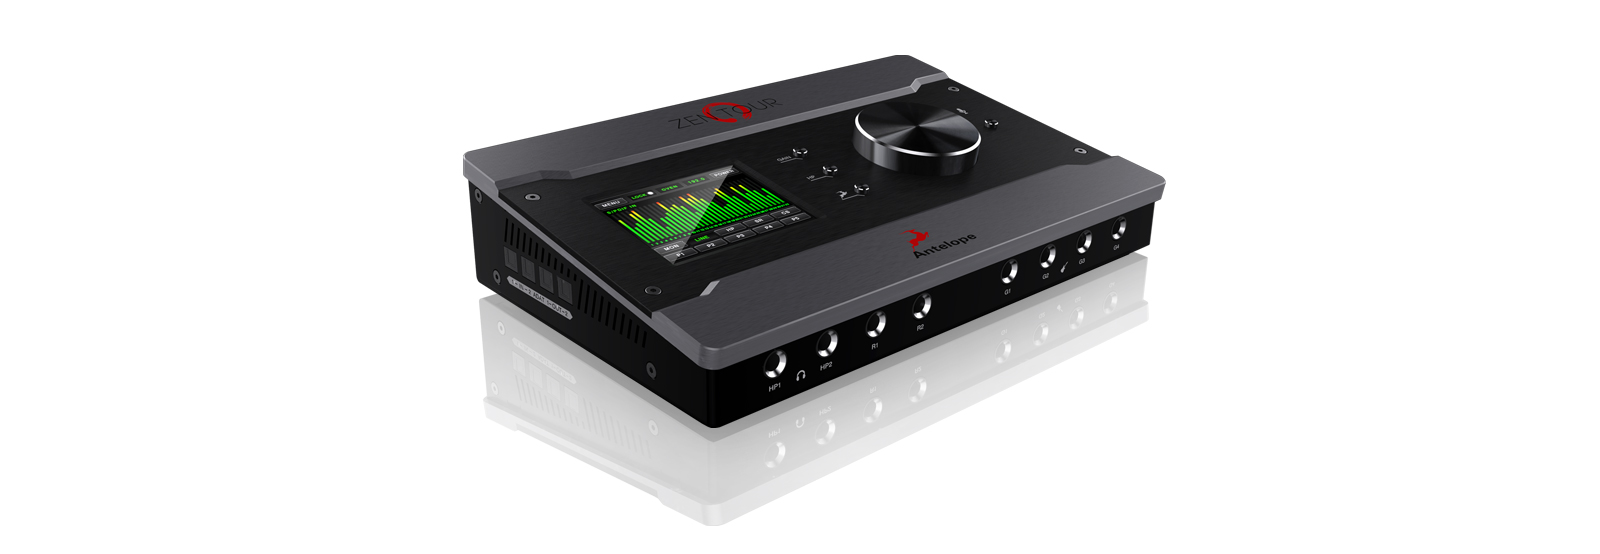 Zen Tour A King Among Portable Interfaces Antelope Audio Schematic For Headphone Amplifier One Channel Two Independent Amps Separate Pairs Of Monitor Outs Plus The Fpga Powered Thunderbolt Custom Usb Make Lightning Fast And